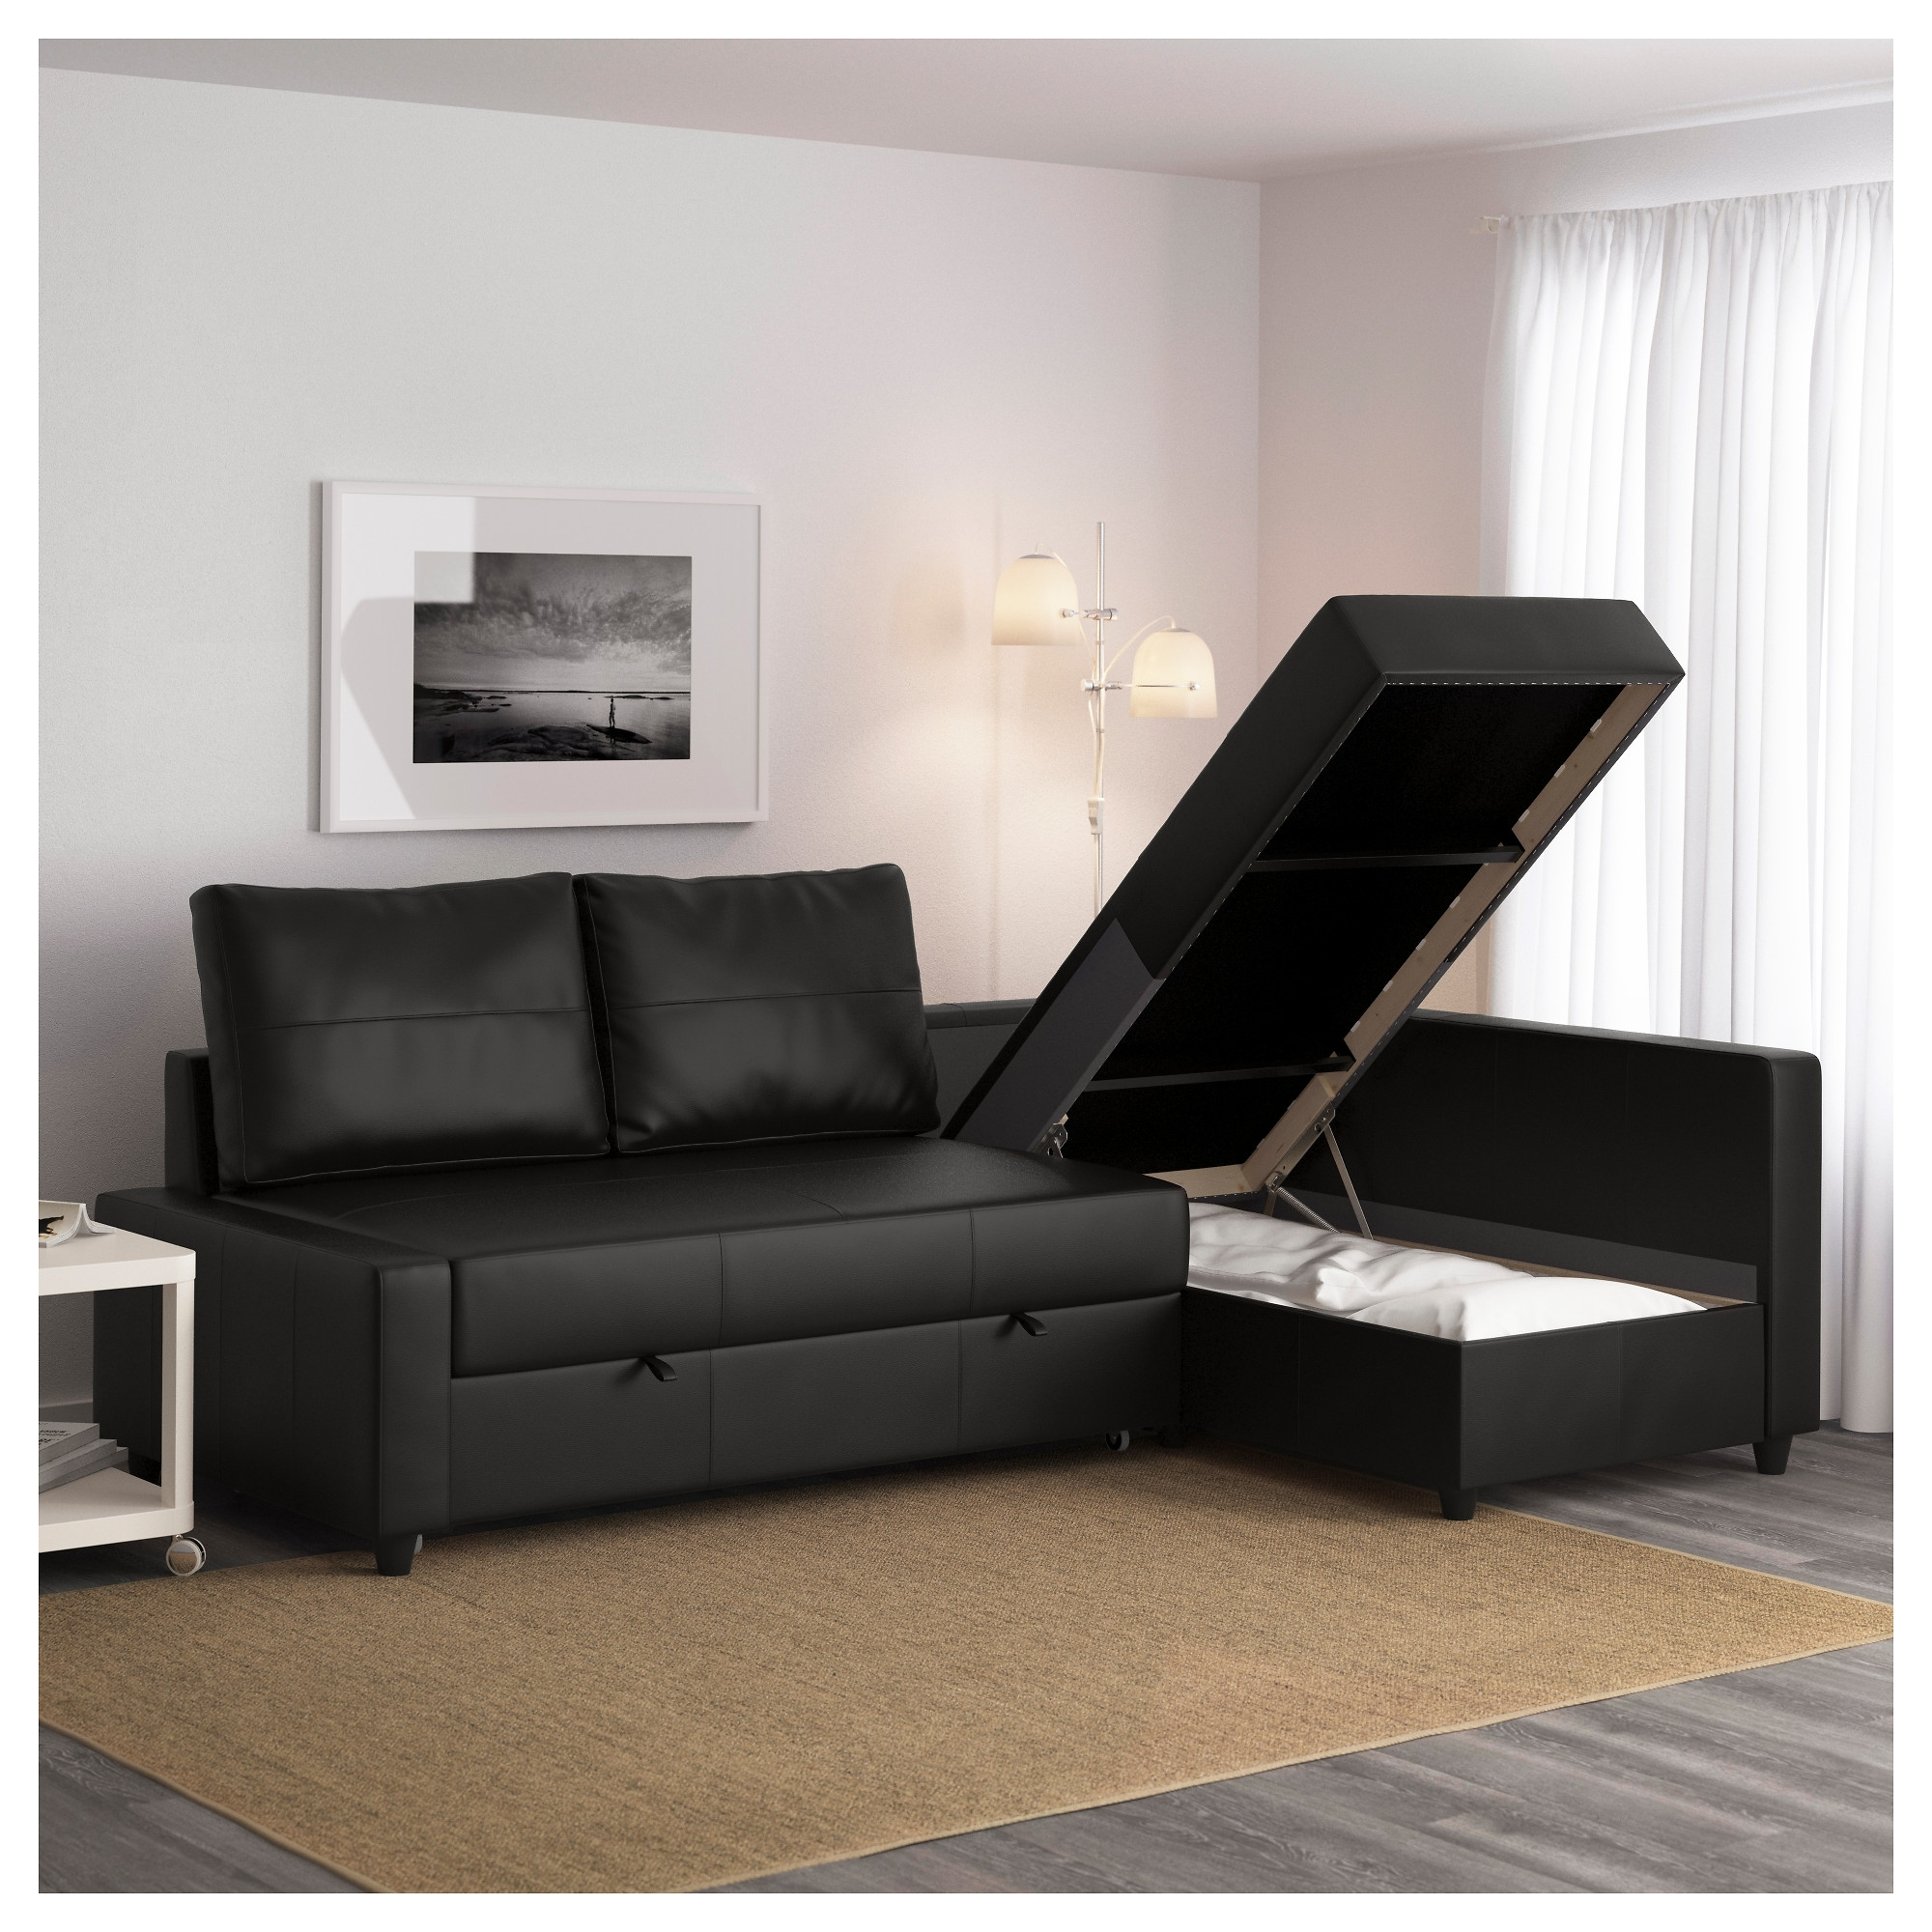 Sleeper Sofas With Storage Chaise Intended For Popular Friheten Sleeper Sectional,3 Seat W/storage – Skiftebo Dark Gray (View 7 of 15)